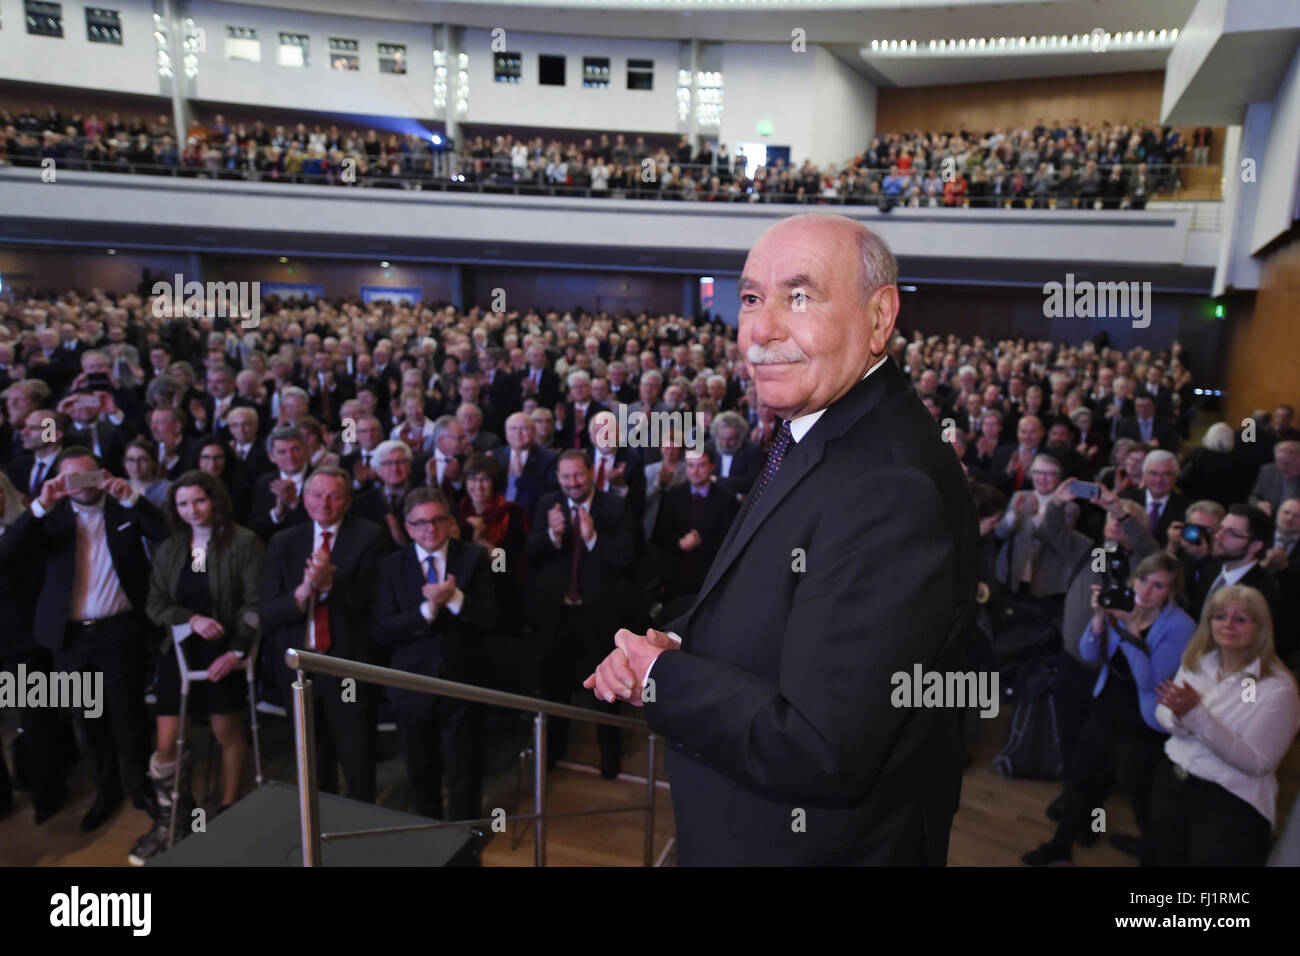 Ivo Goenner, mayor of Ulm, receives applause after is speech in the Congress Center in Ulm, Germany, 28 February - Stock Image